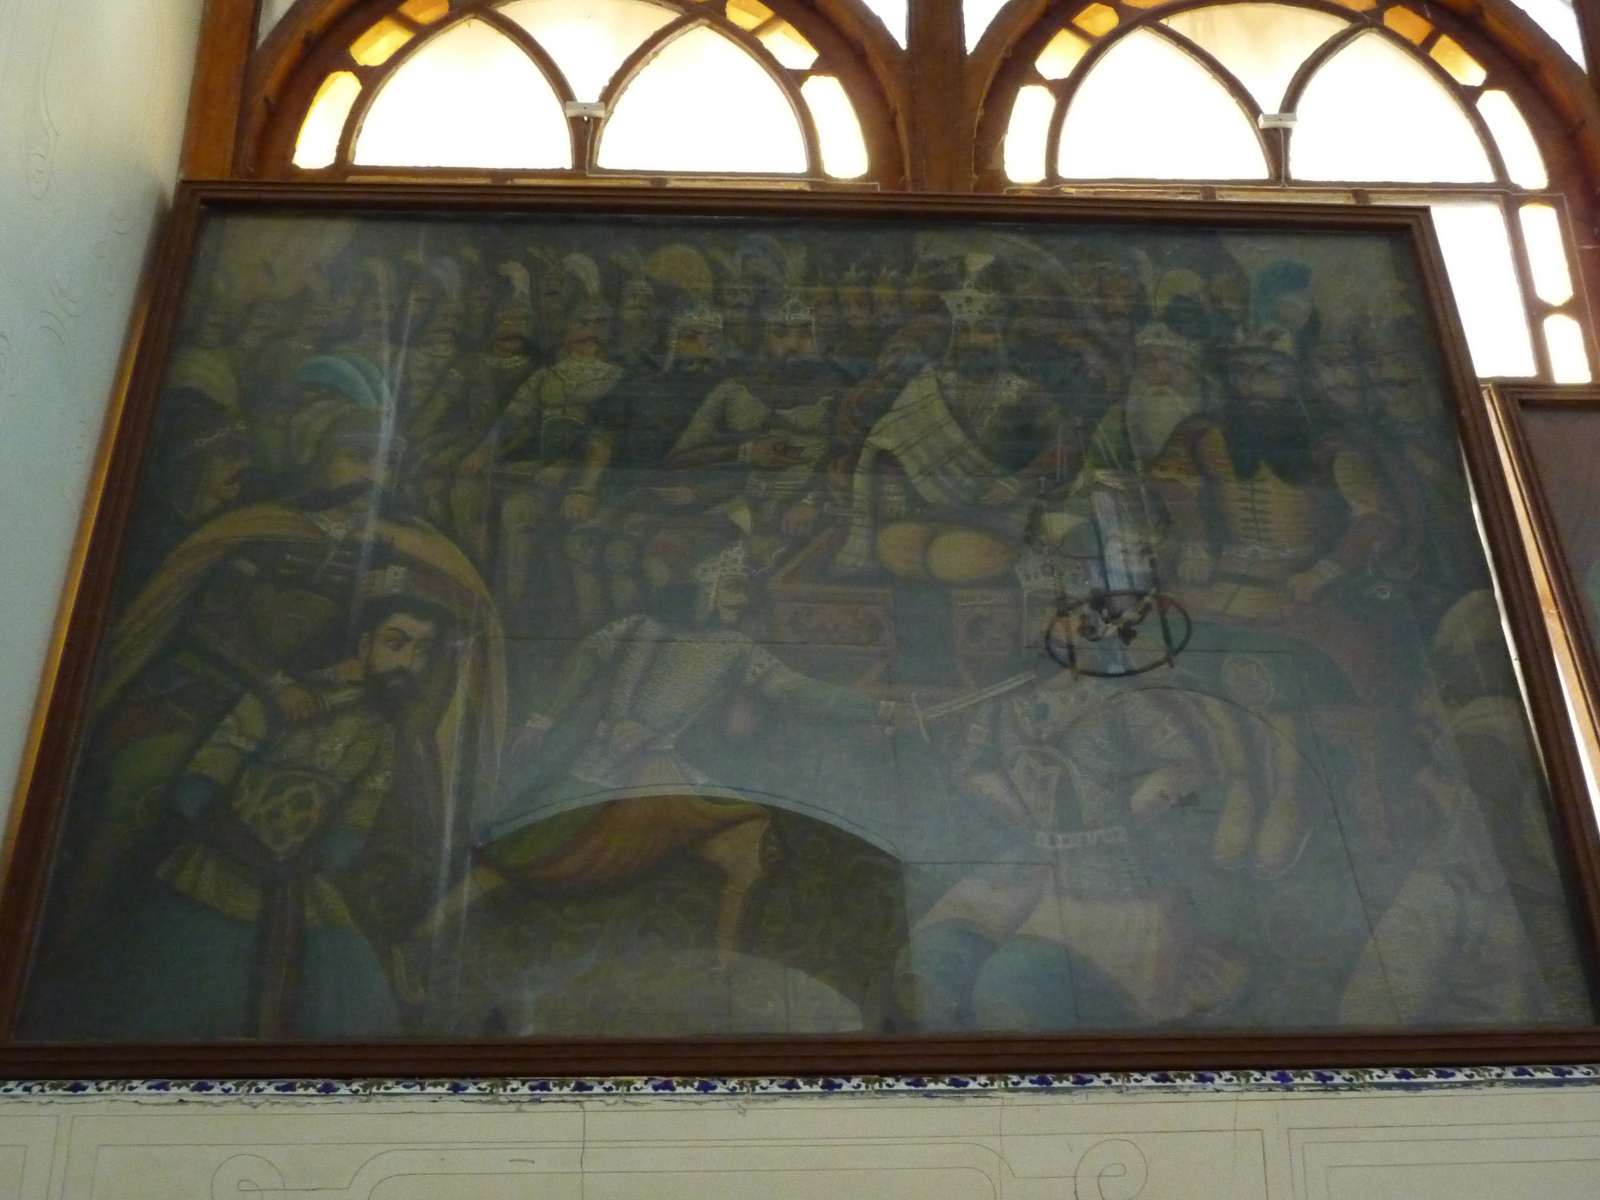 Baq-e Afifabad - Museum - Painting